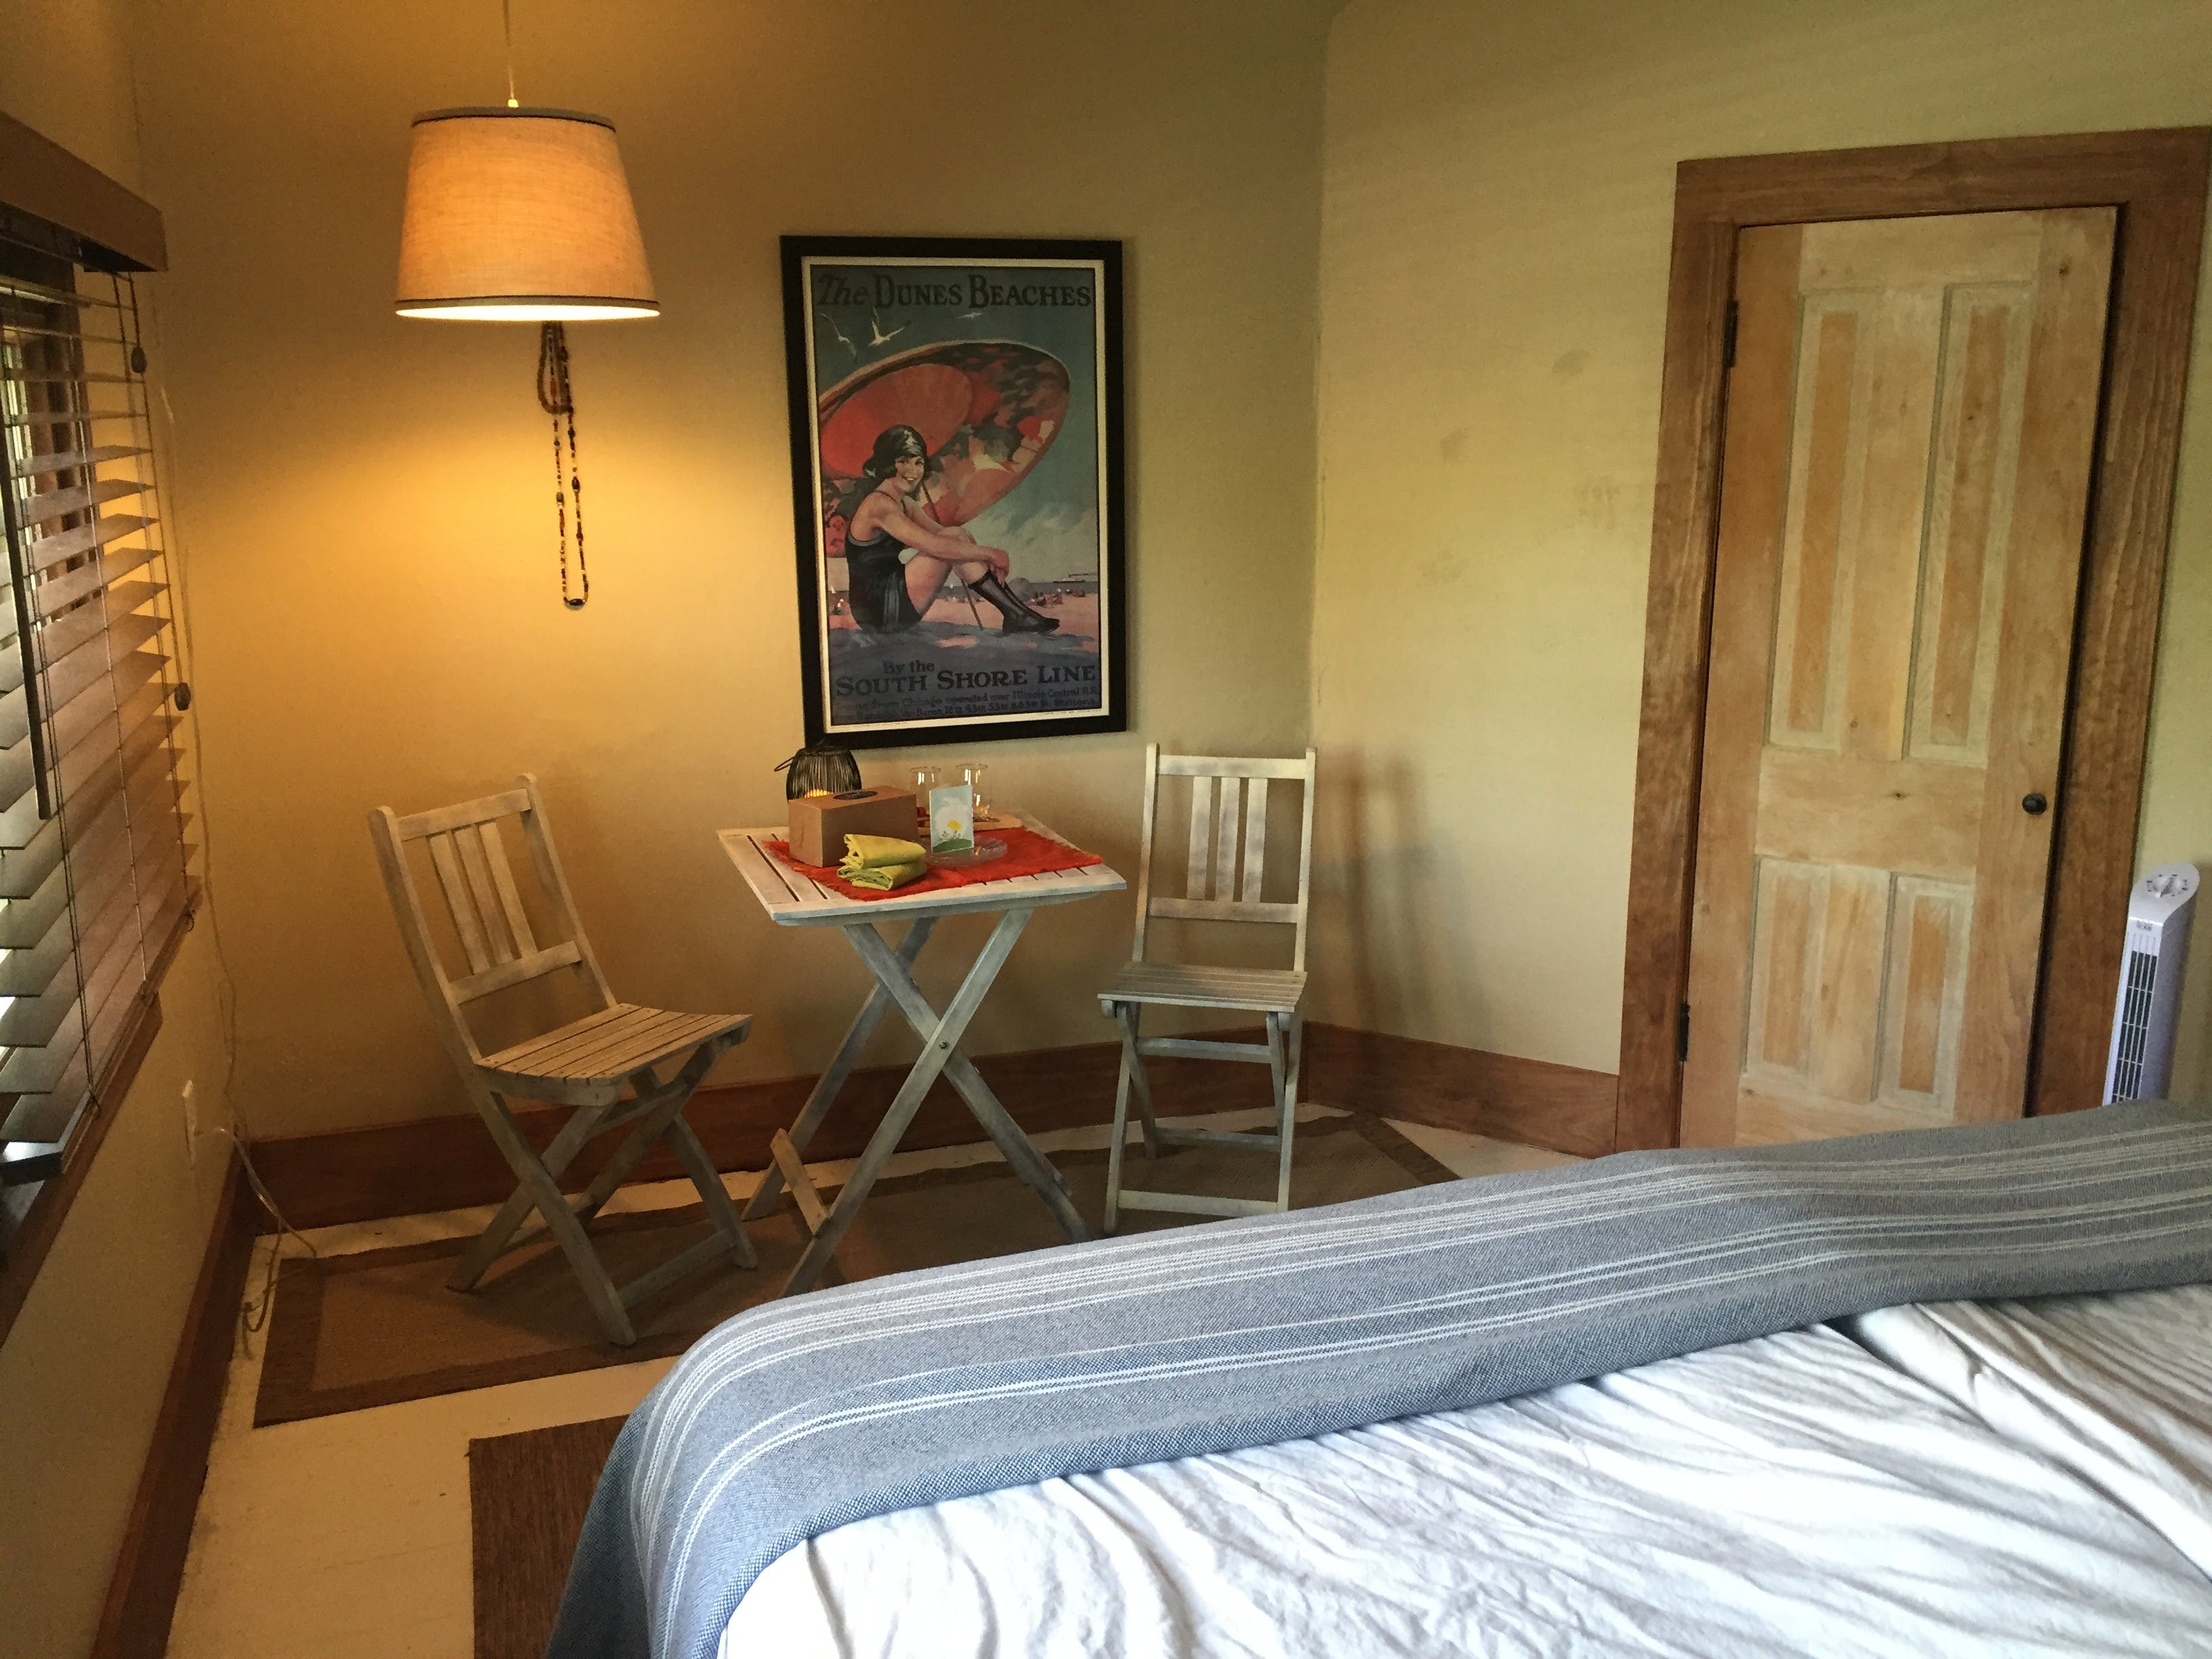 Second floor guest room with king bed, bistro set, and guest snacks